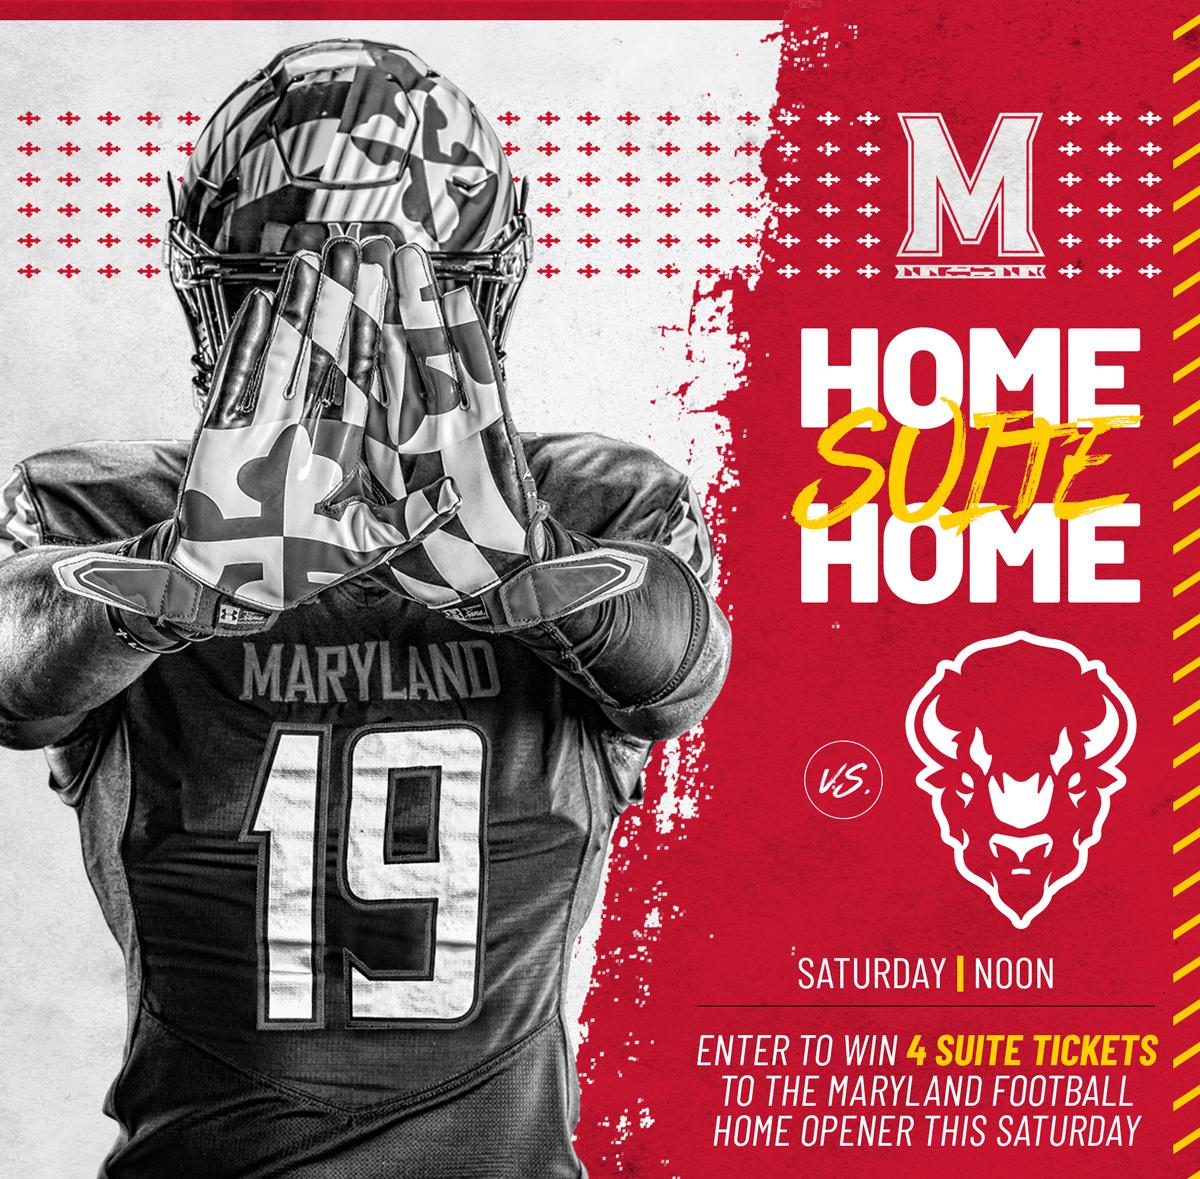 GIVEAWAY - Enter to win four (4) suite tickets to the @TerpsFootball home opener vs. Howard this Saturday at Capital One Field at Maryland Stadium! Winners will be selected and notified on Wednesday, 8/28/19. #FearTheTurtle   Enter now: https://t.co/E04new4UVL #ad https://t.co/kXBwllrica